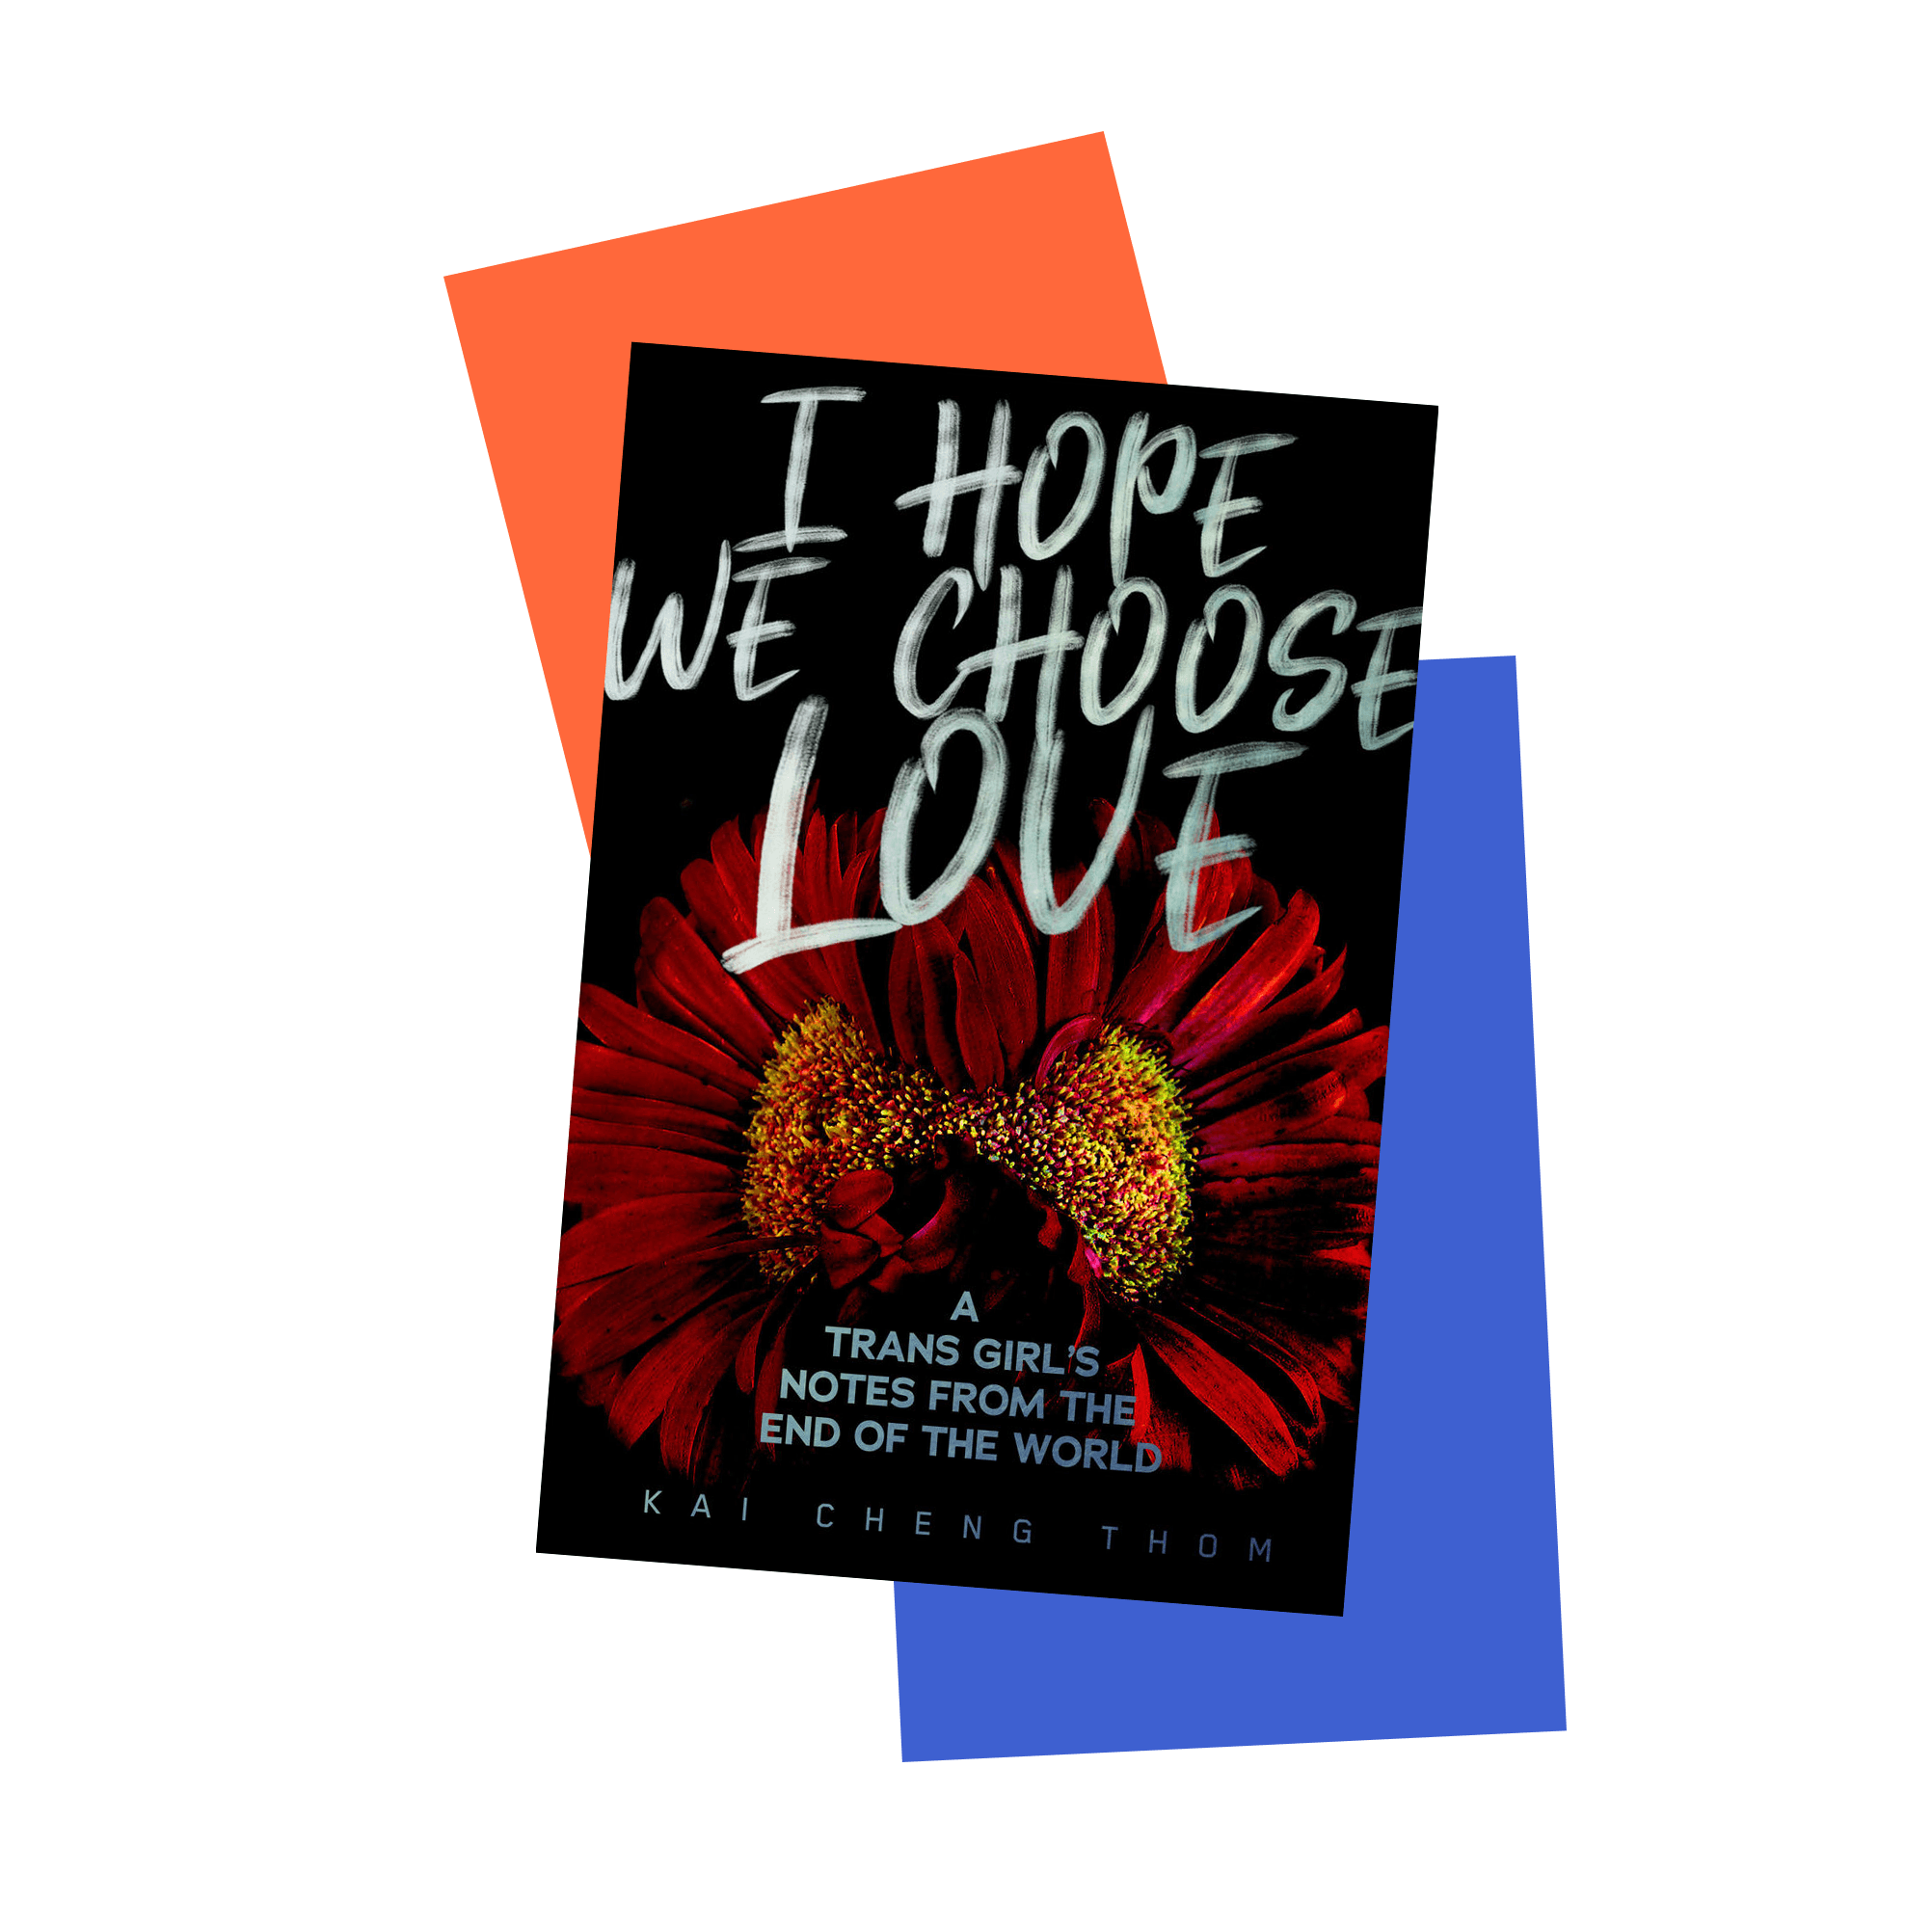 Book jacket cover for I Hope We Choose Love: A Trans Girl's Notes From the End of the World by Kai Cheng Thom